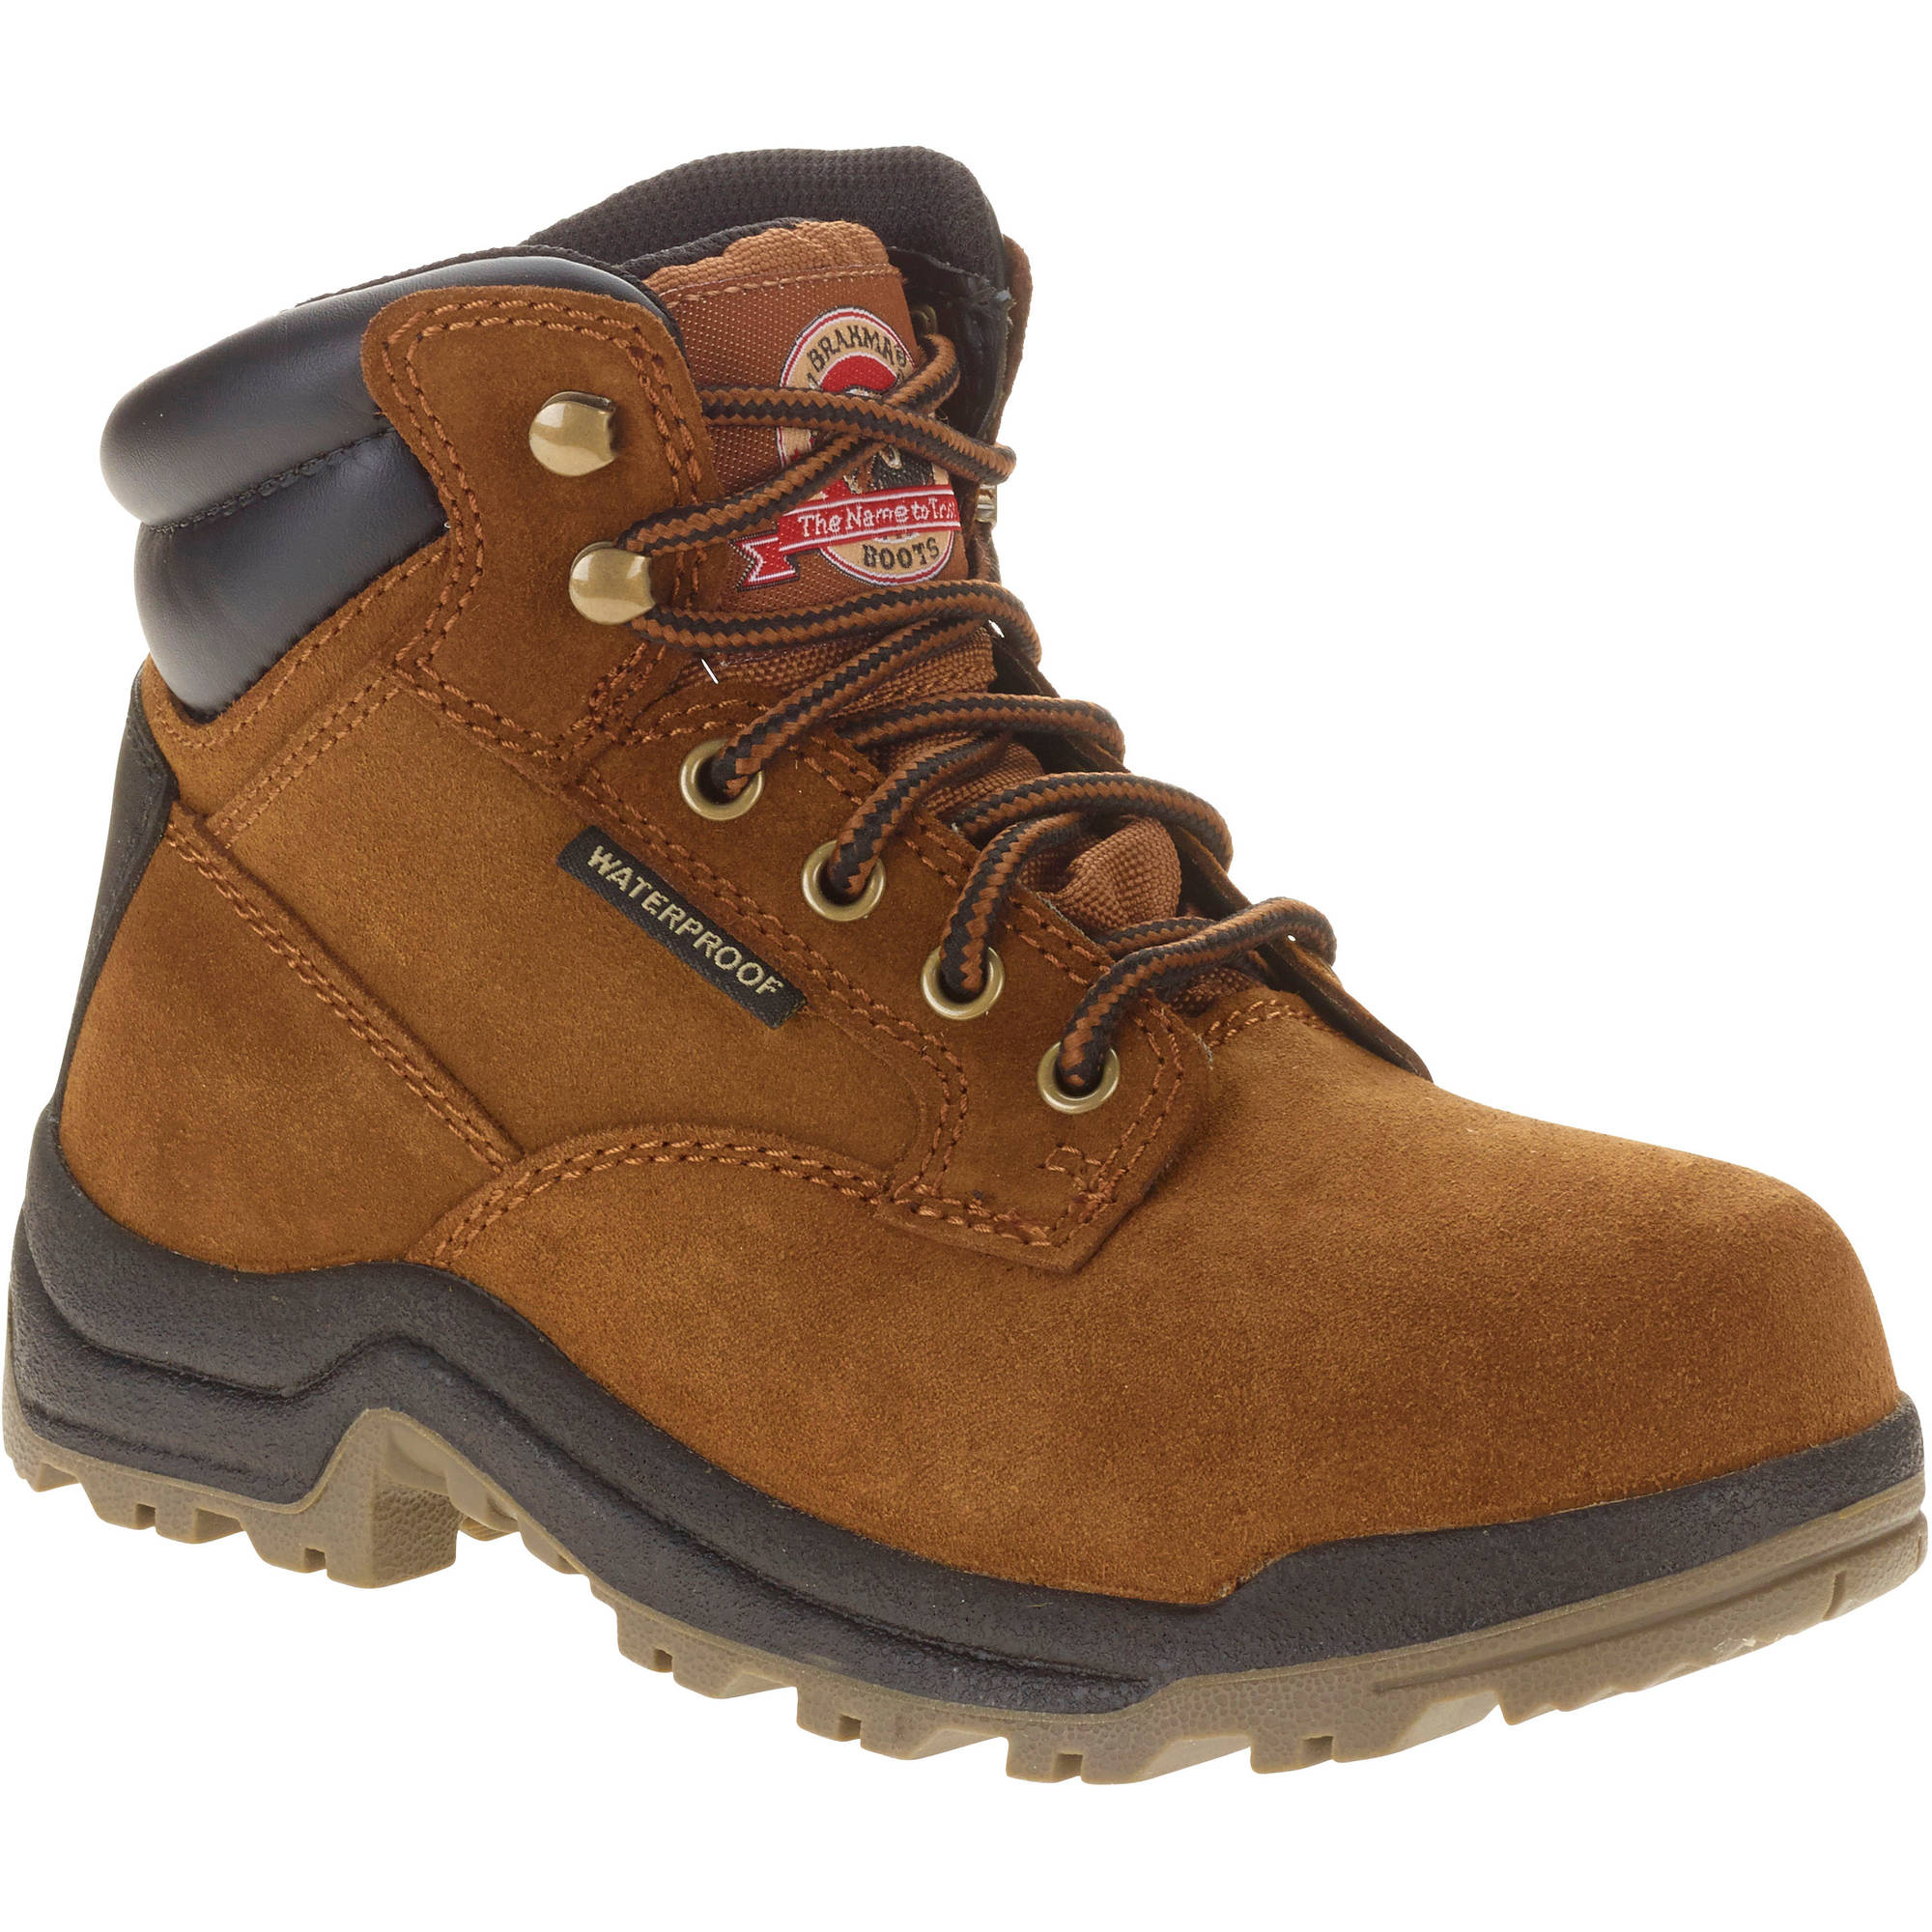 Brahma Women's Diane II Leather Work Boot